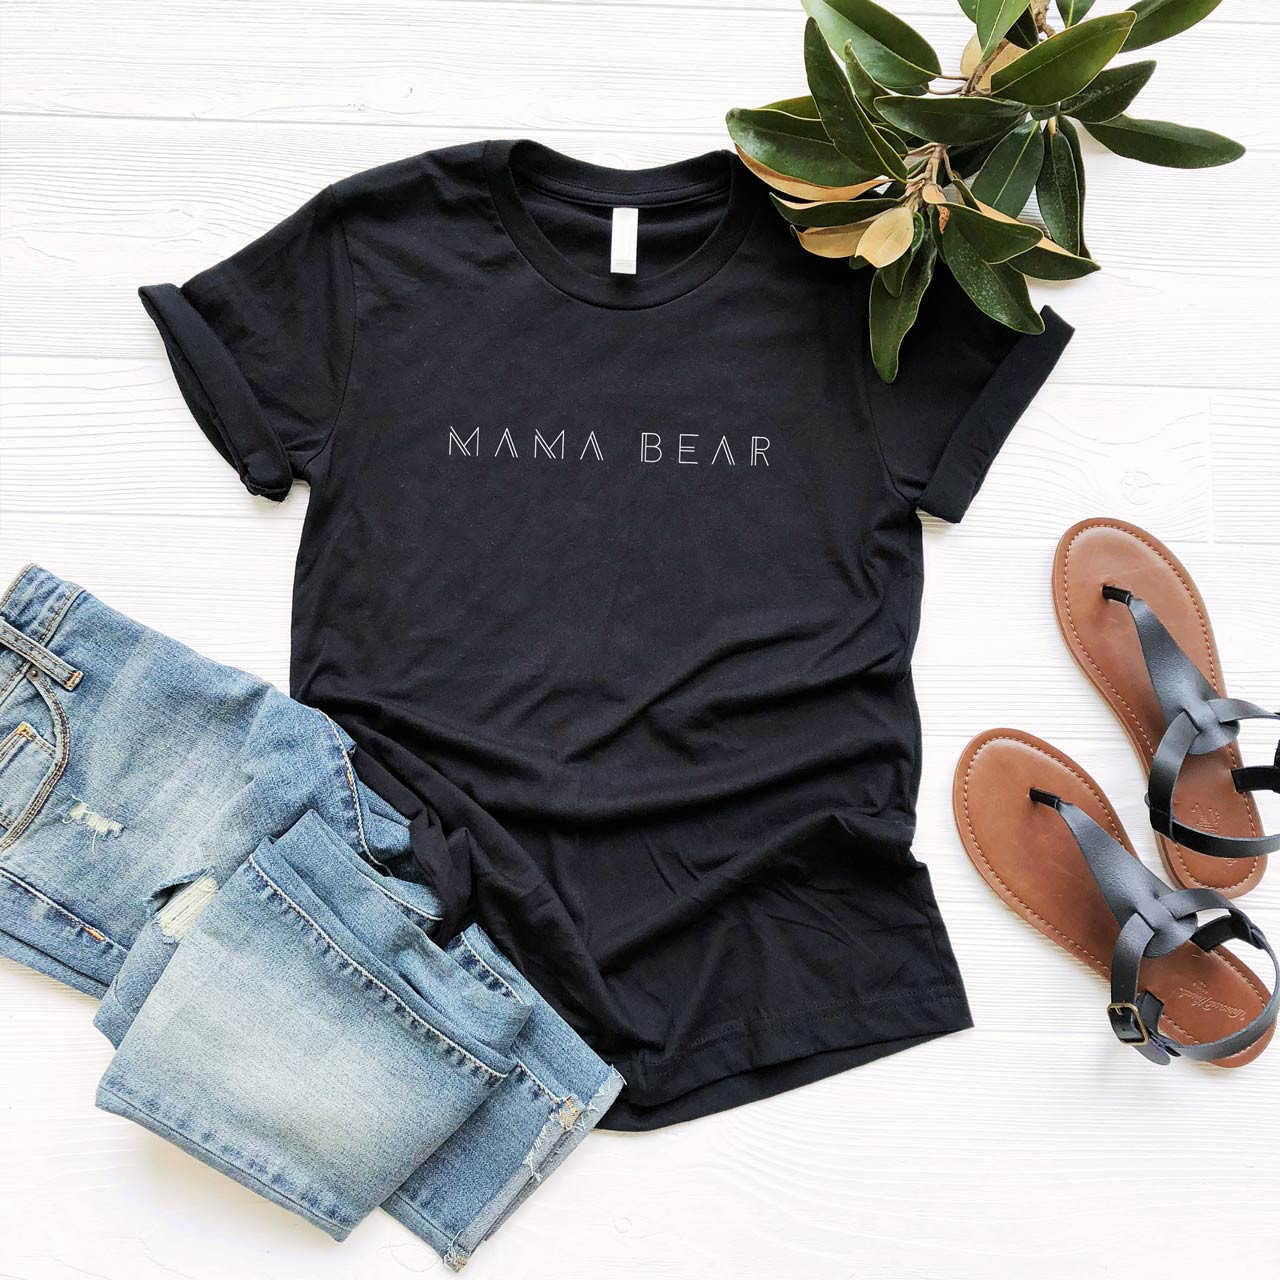 MAMA BEAR Cotton T-Shirt (White on Black) from The Printed Home